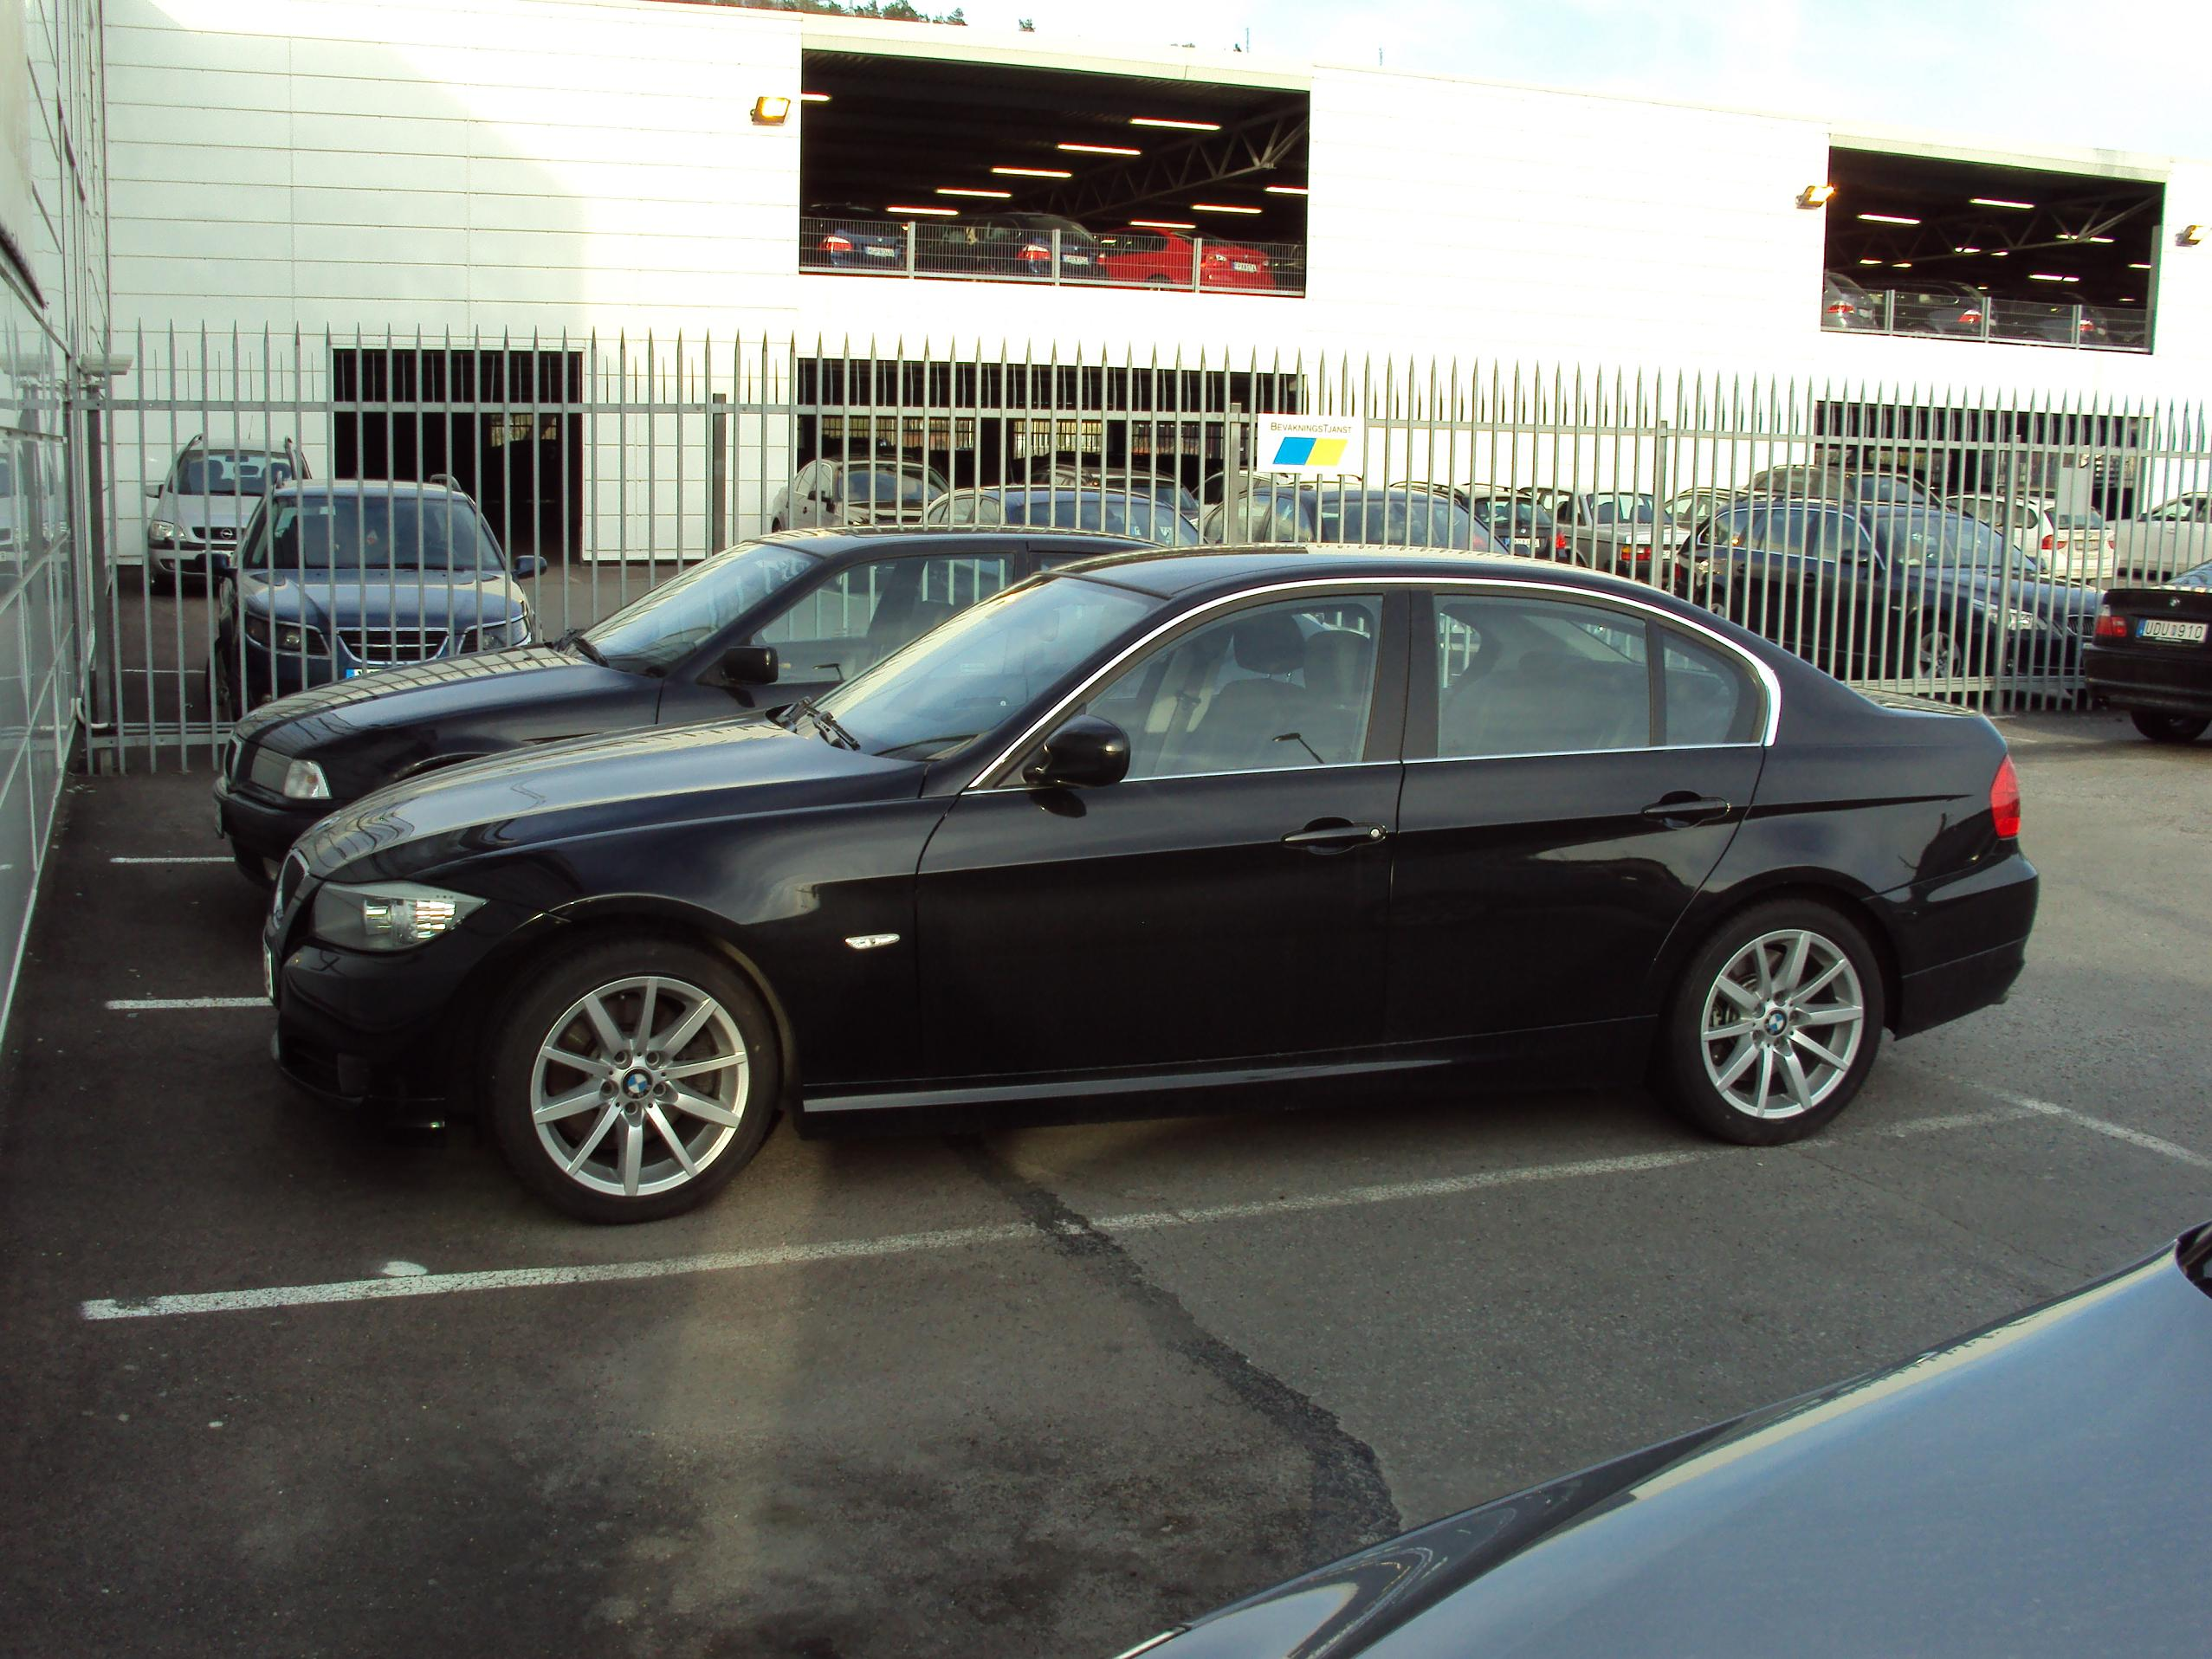 BMW 325d | Flickr - Photo Sharing!